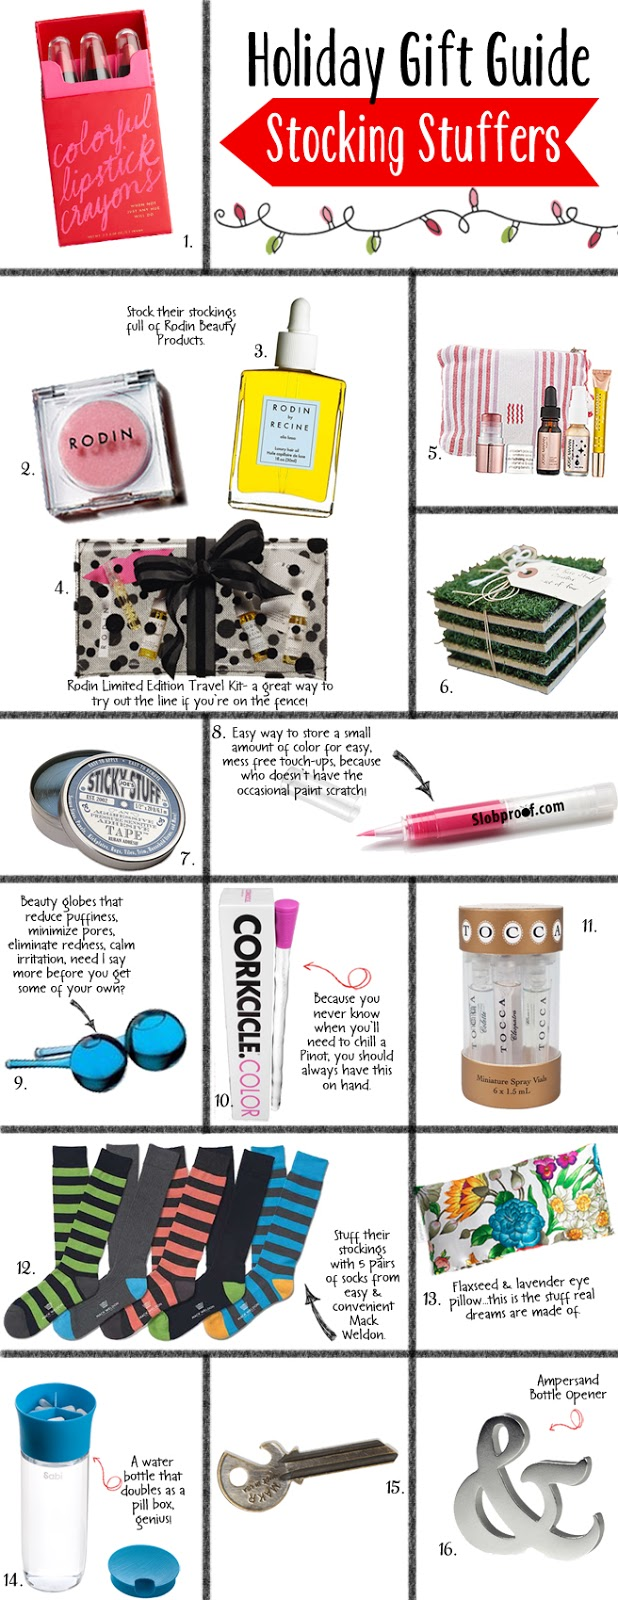 Holiday Gift Guide Stocking Stuffers 2012